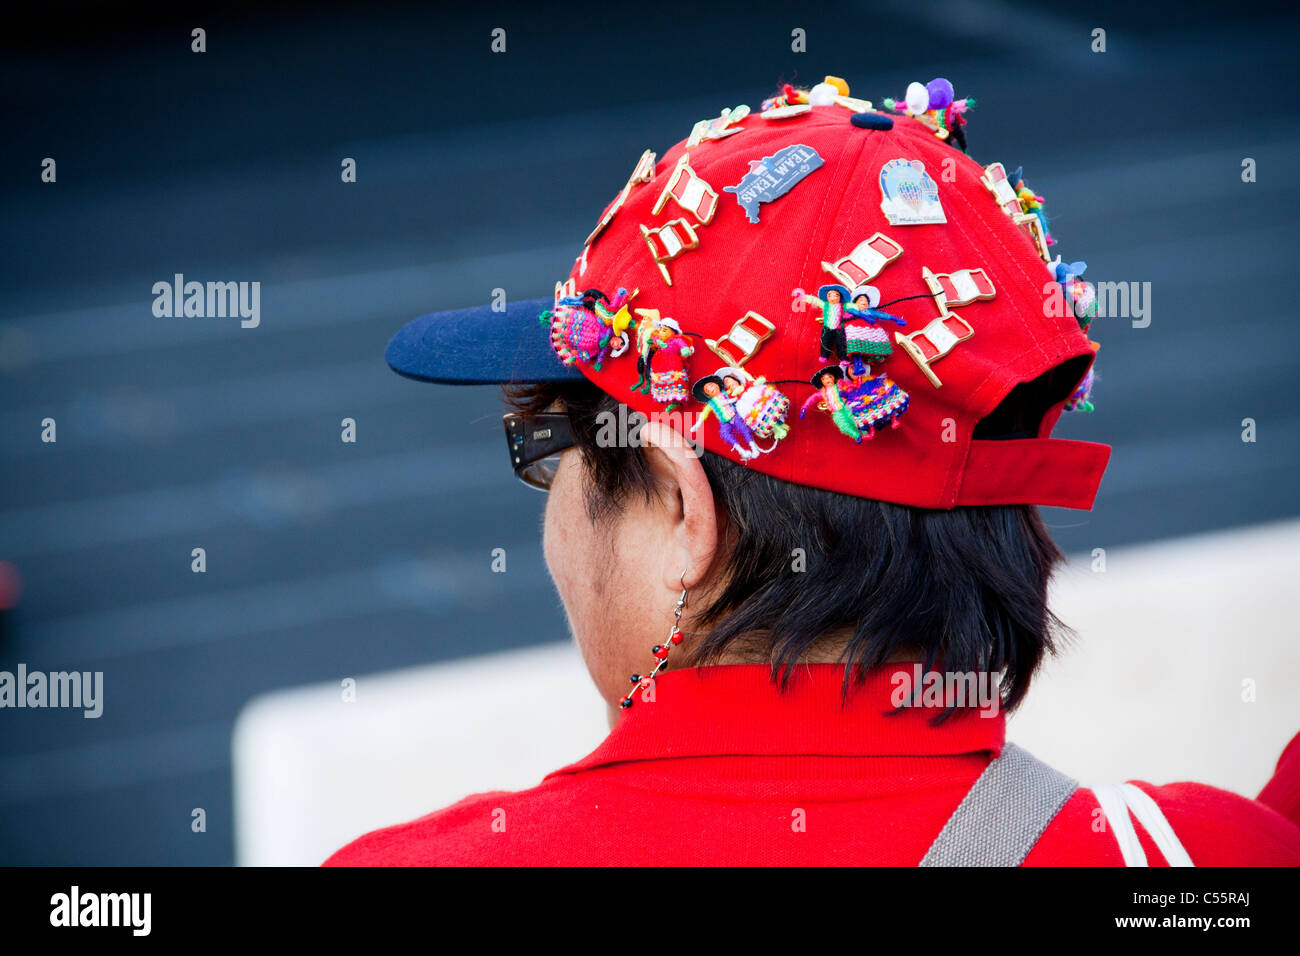 Athens 2011 Special Olympics Opening Ceremony - Peruvian woman with decorated hat - Stock Image